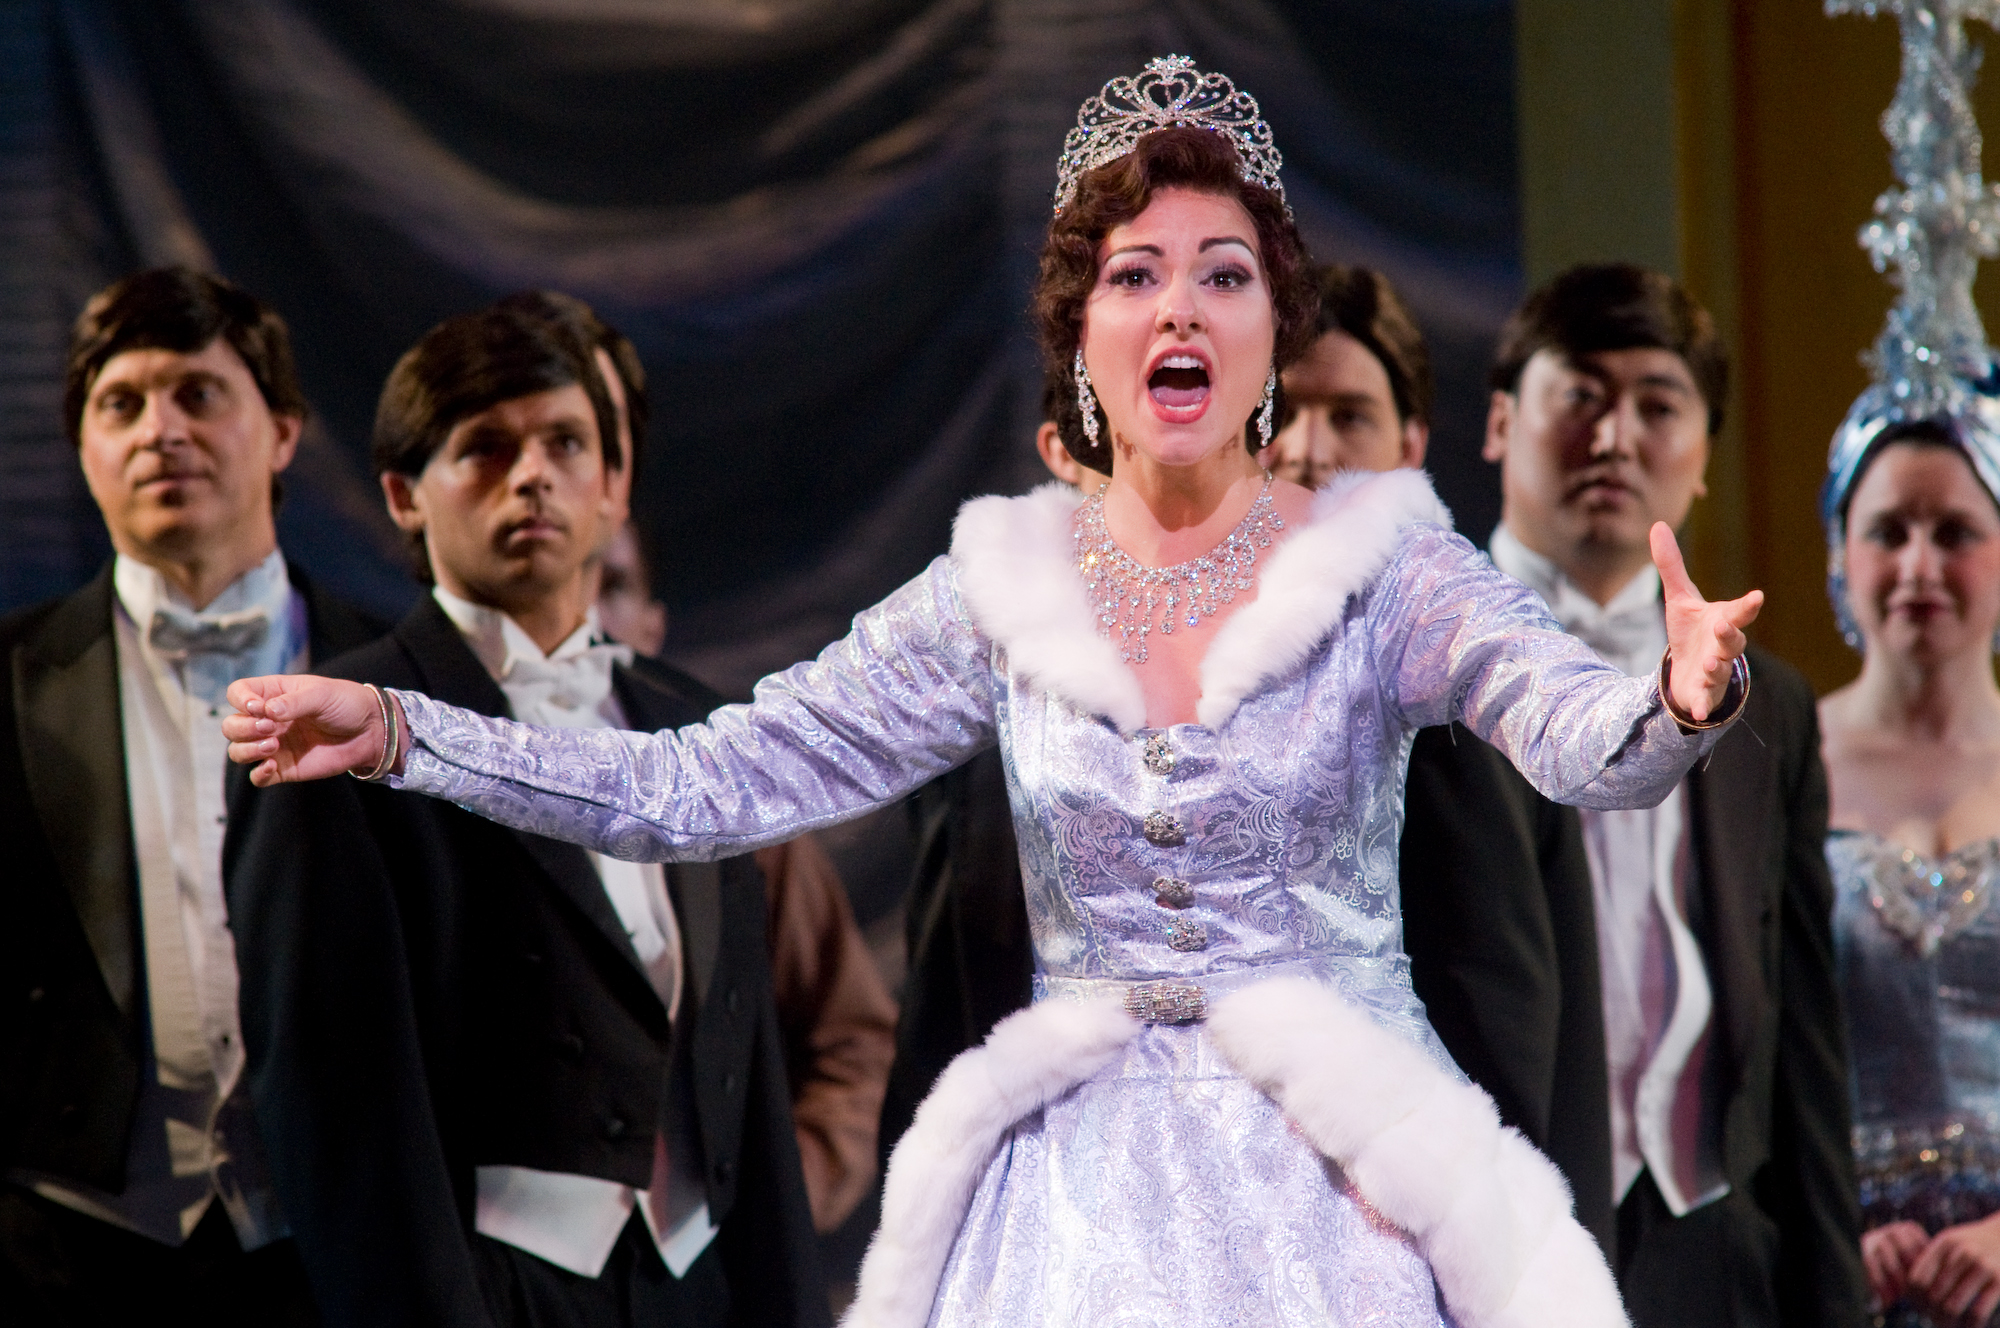 Austin Lyric Opera's production of Cinderella